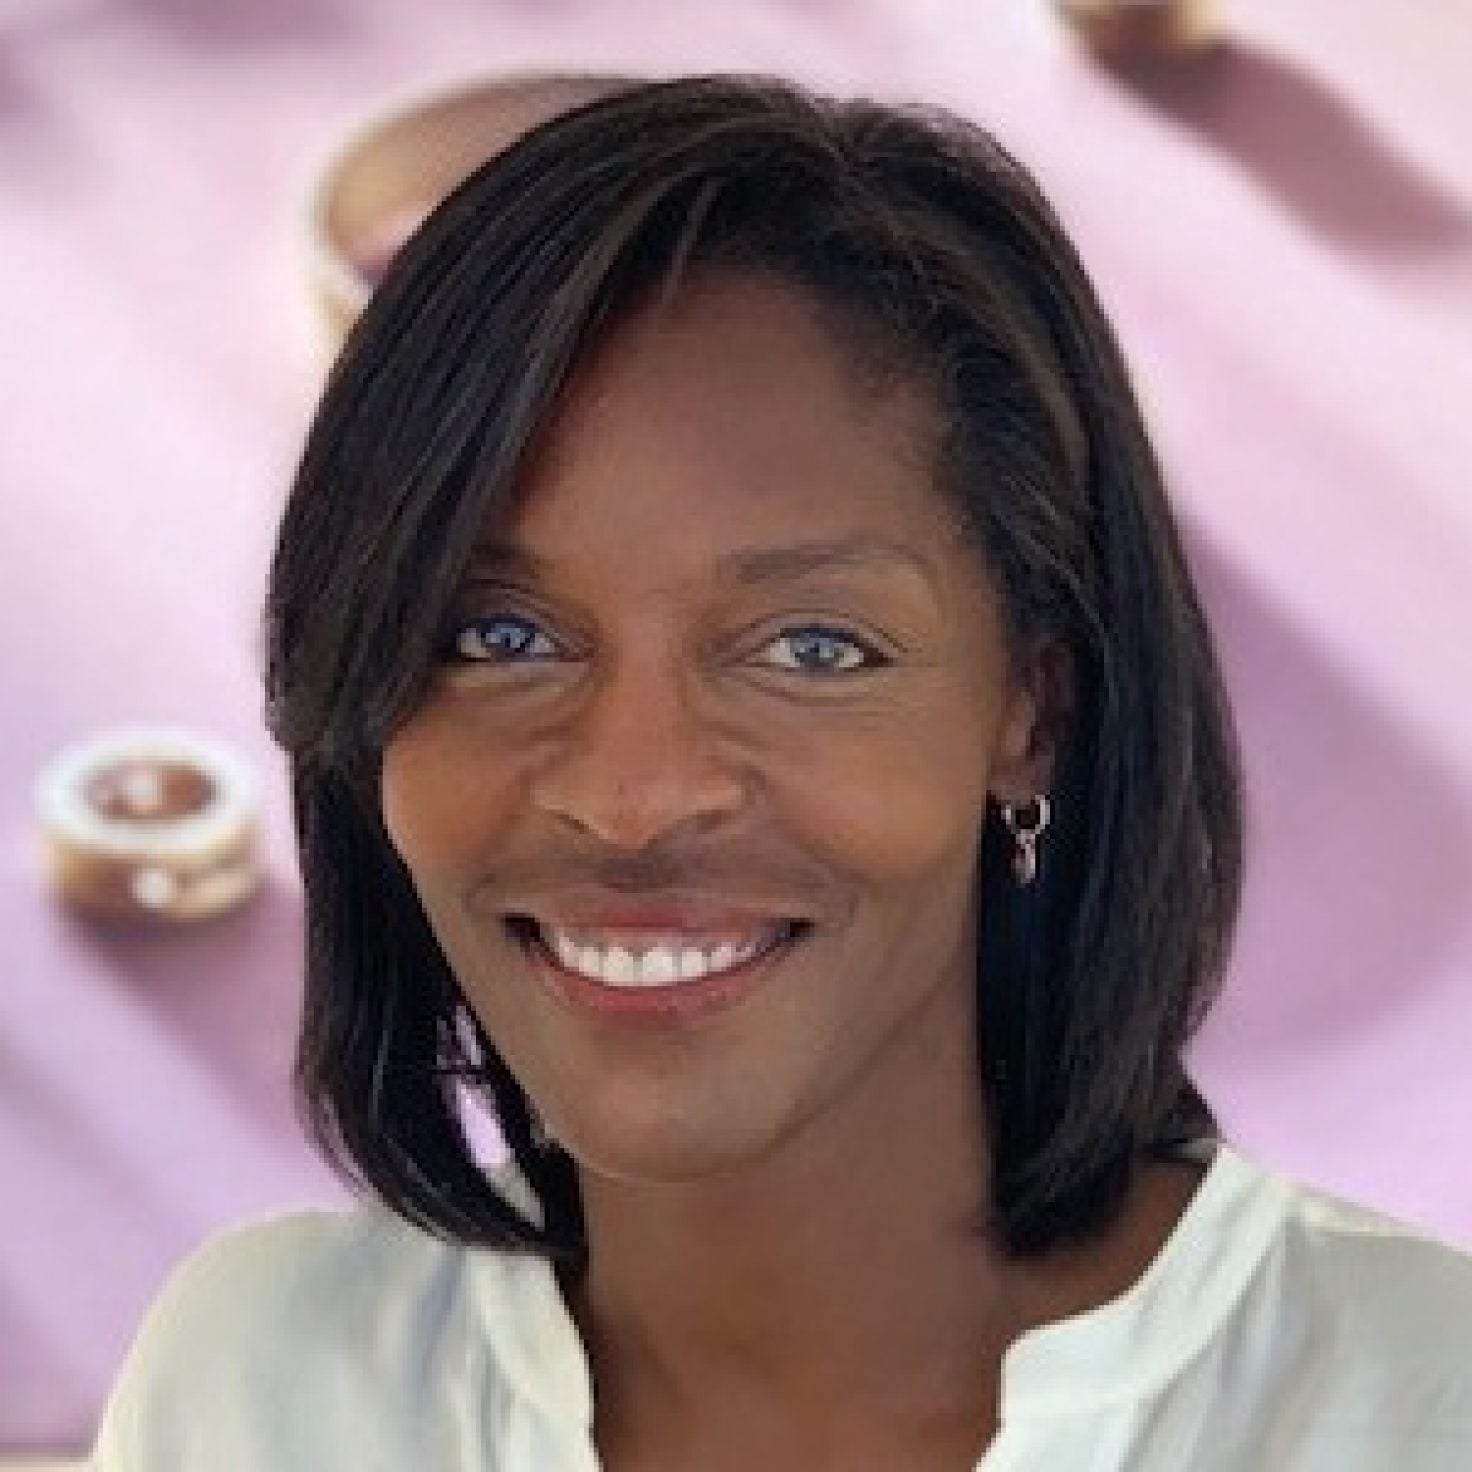 Pandora Jewelry CMO Americas, Charisse Hughes Talks How To Choose Yourself While Being Career Driven